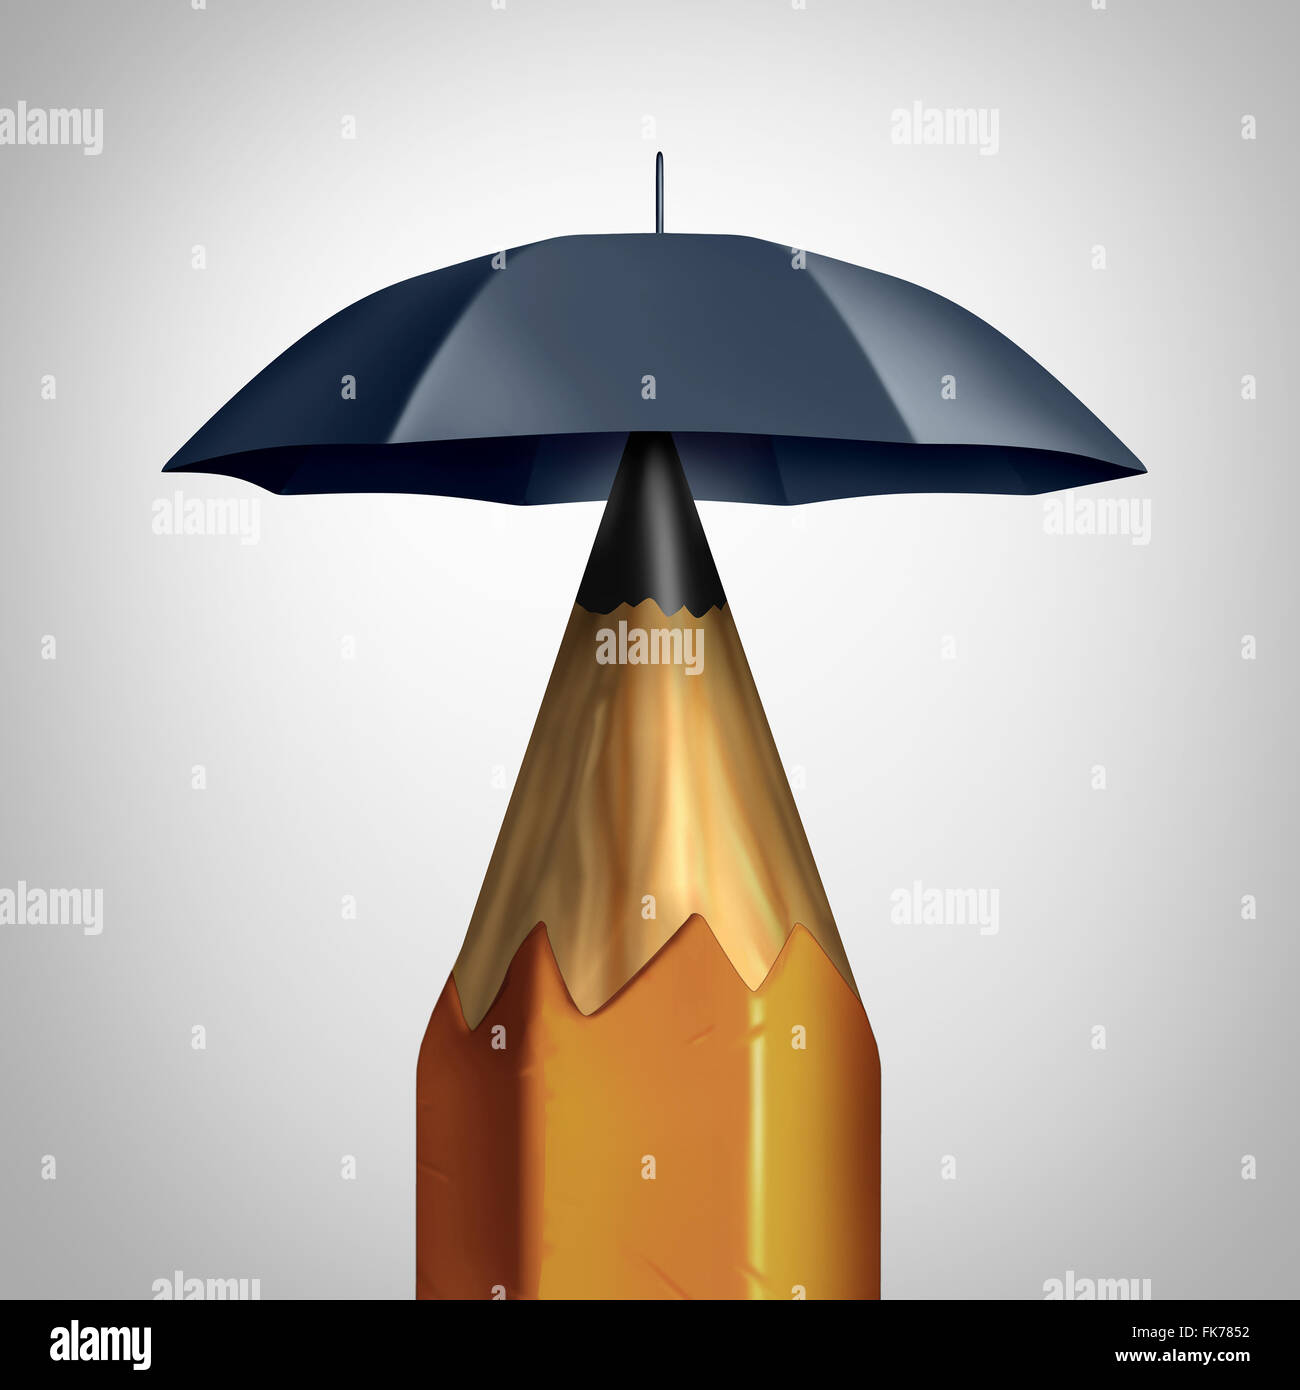 Potential security conceprt or education safety symbol or freedom of speech icon as a pencil with an umbrella protecting - Stock Image